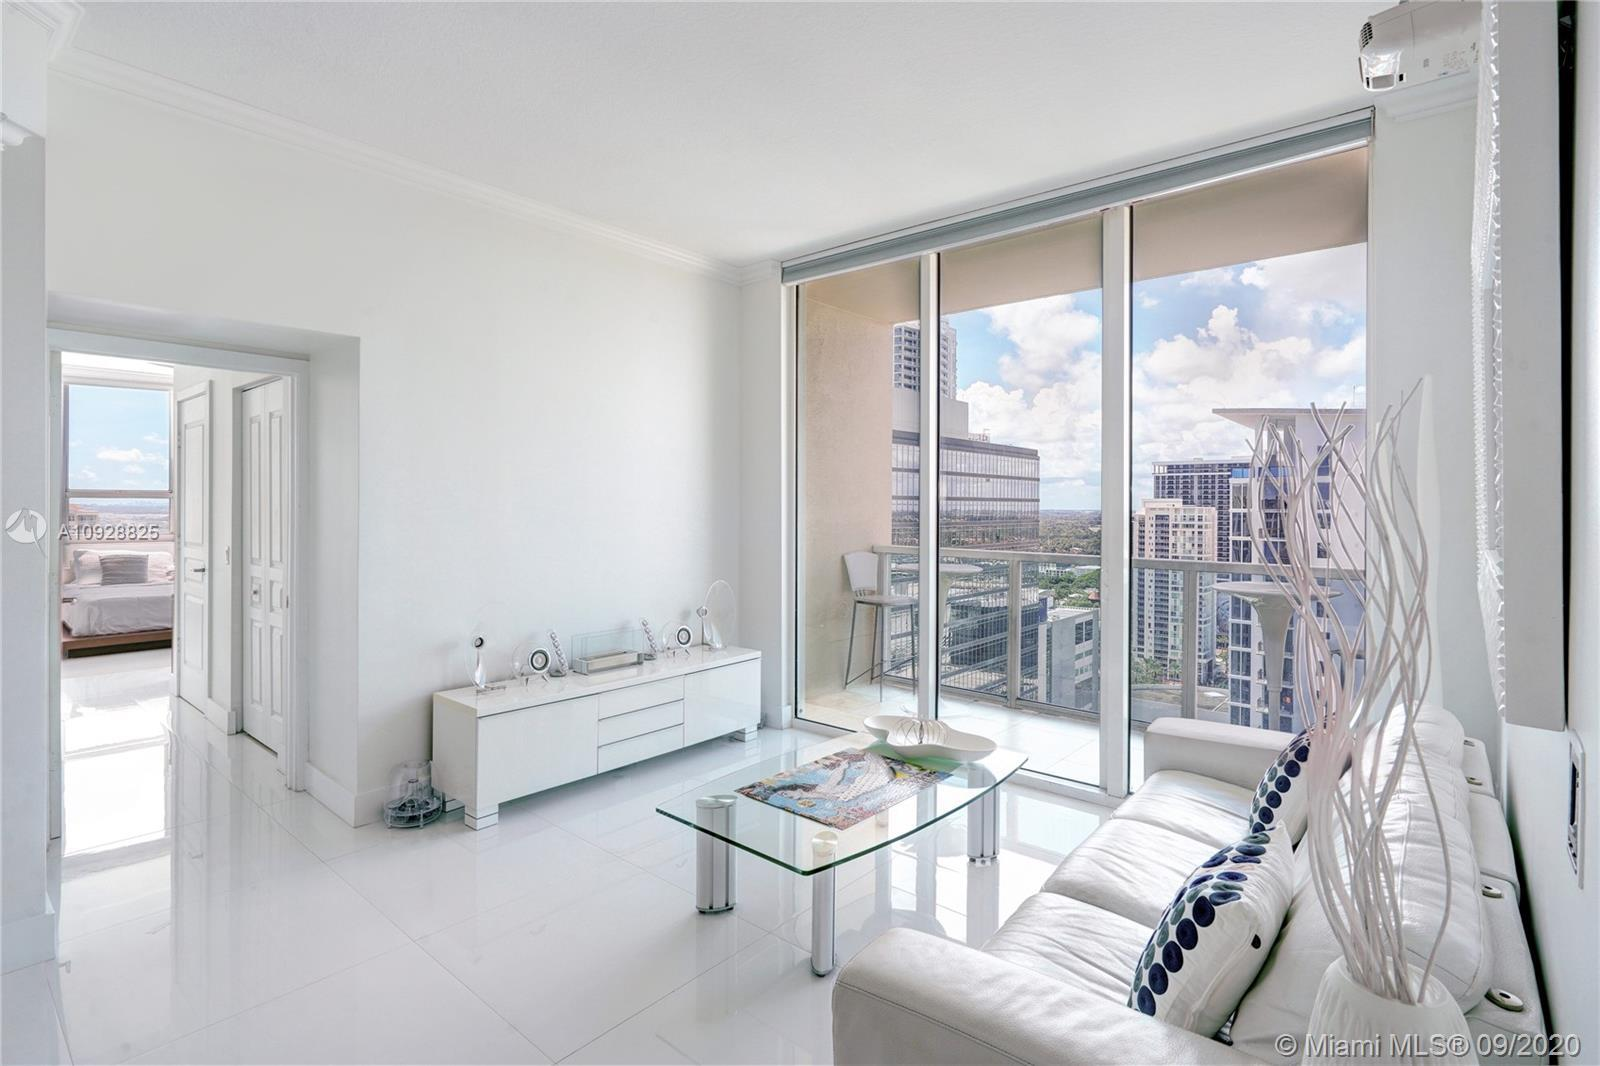 RARE PENTHOUSE FLOOR UNIT in the Heart of Las Olas. Desirable Split Floor Plan with 10' Ceilings, 2